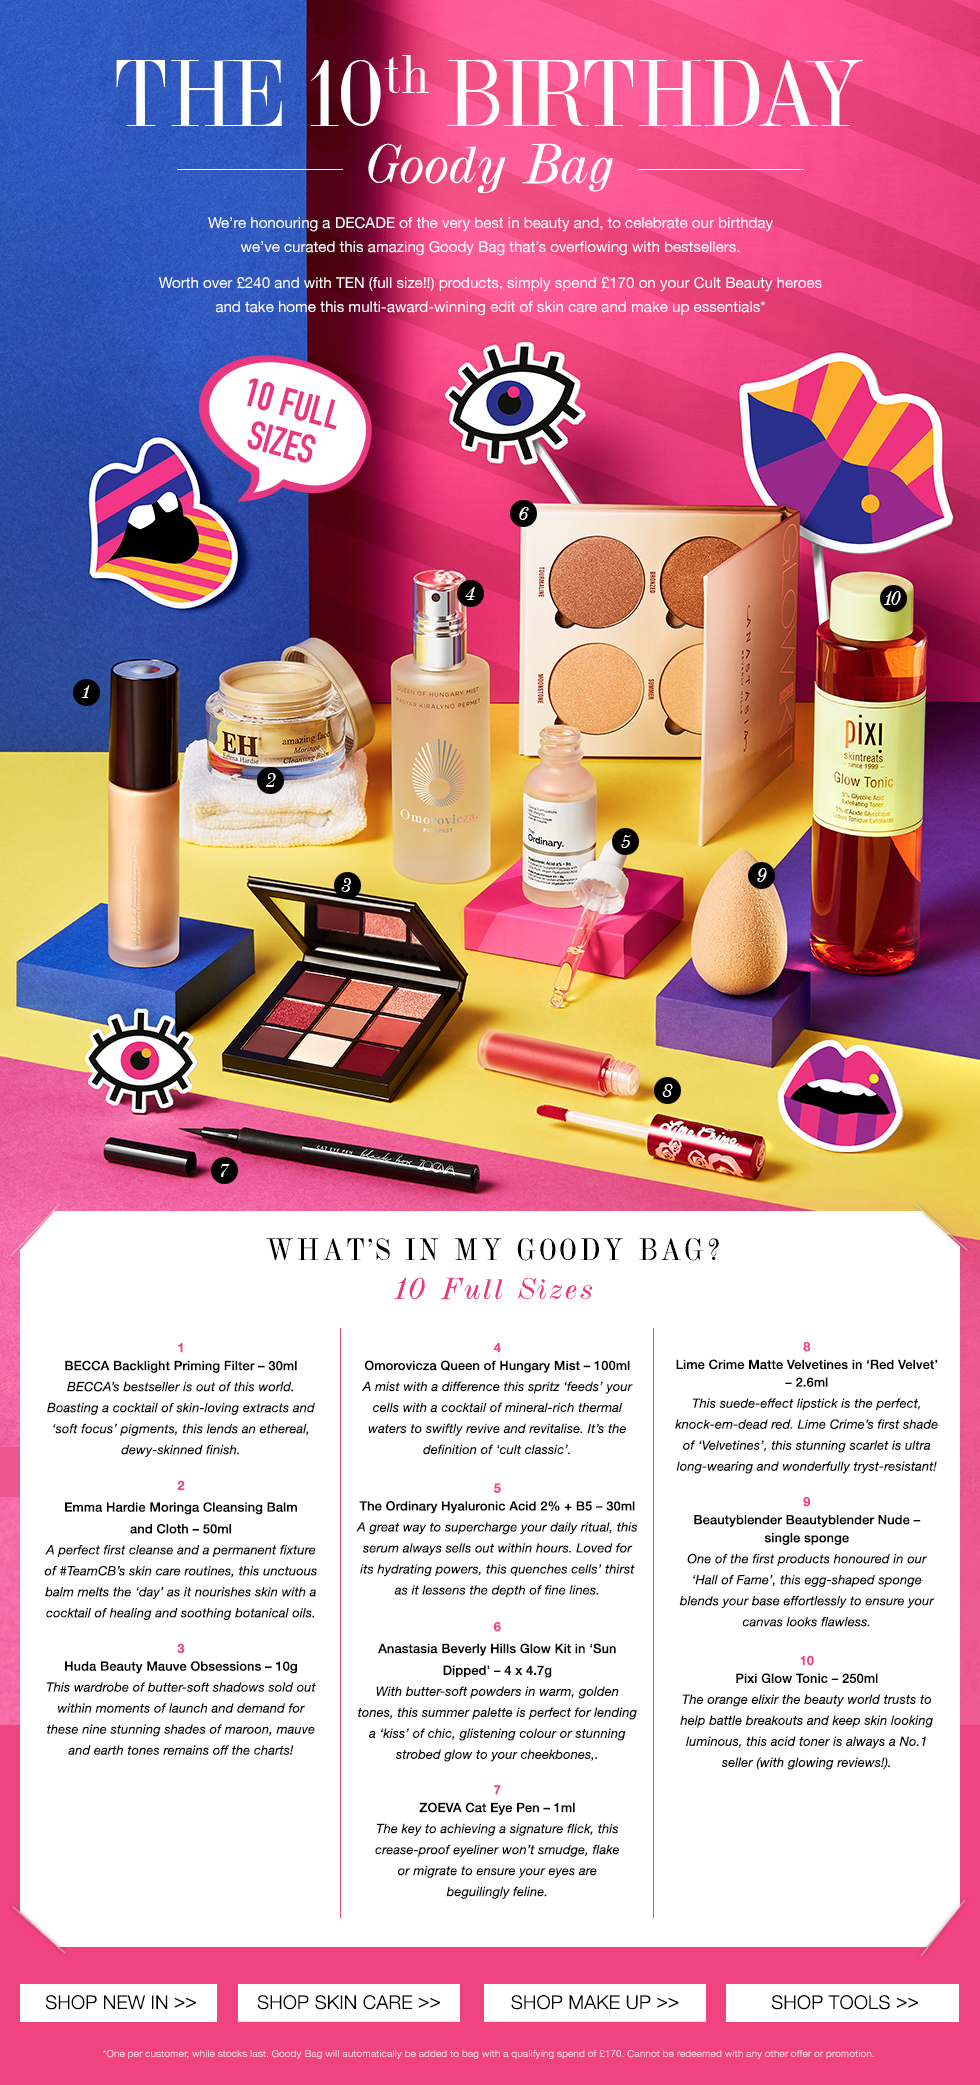 Cult beauty 180221_goodybag_landingpage_june-7kyaq